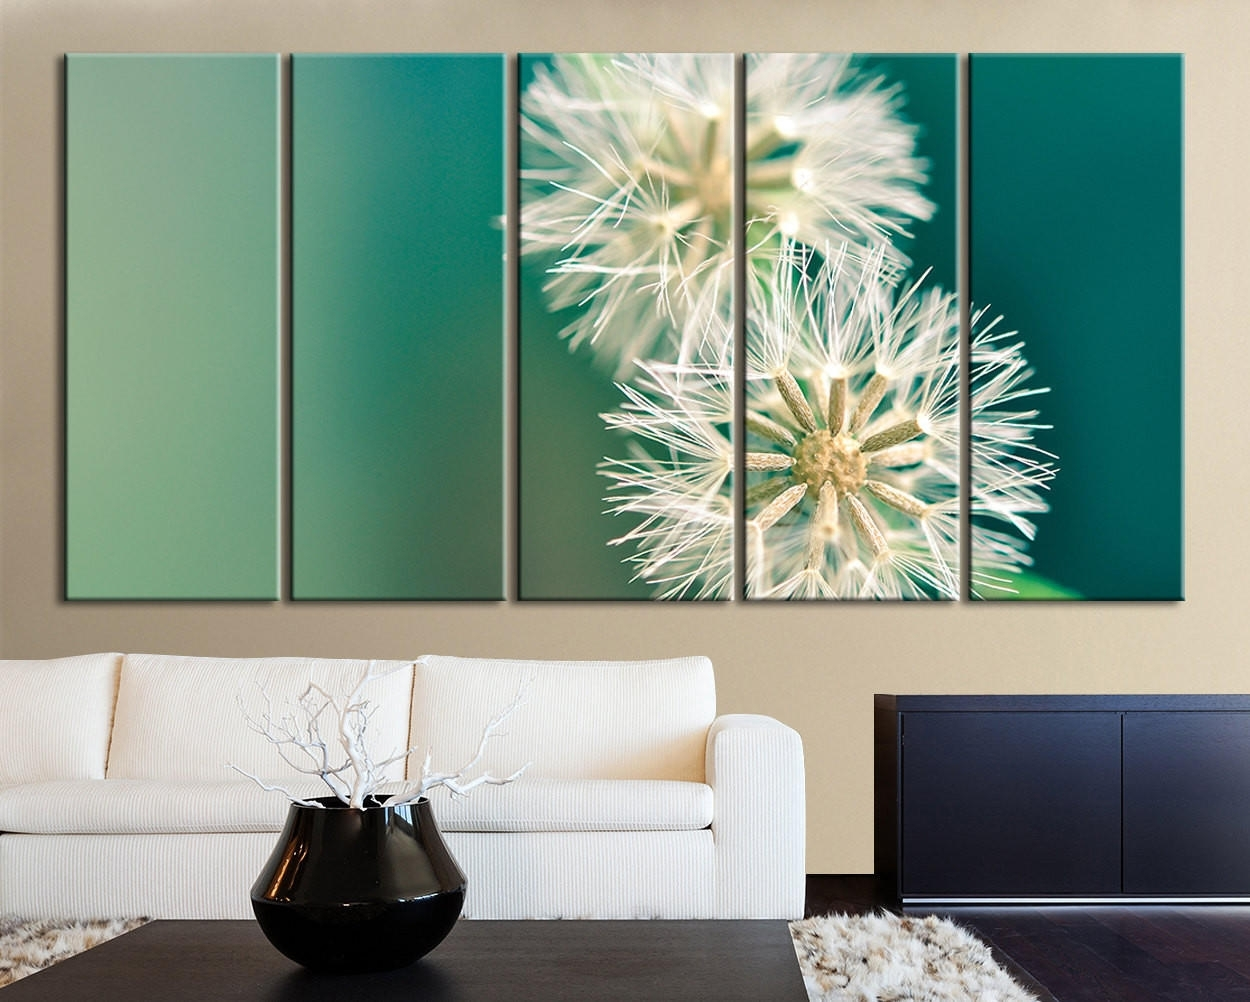 Xxl 5 Panel Wall Art Canvas Print From Mycanvasprint Within Most Recent Dandelion Canvas Wall Art (View 3 of 15)